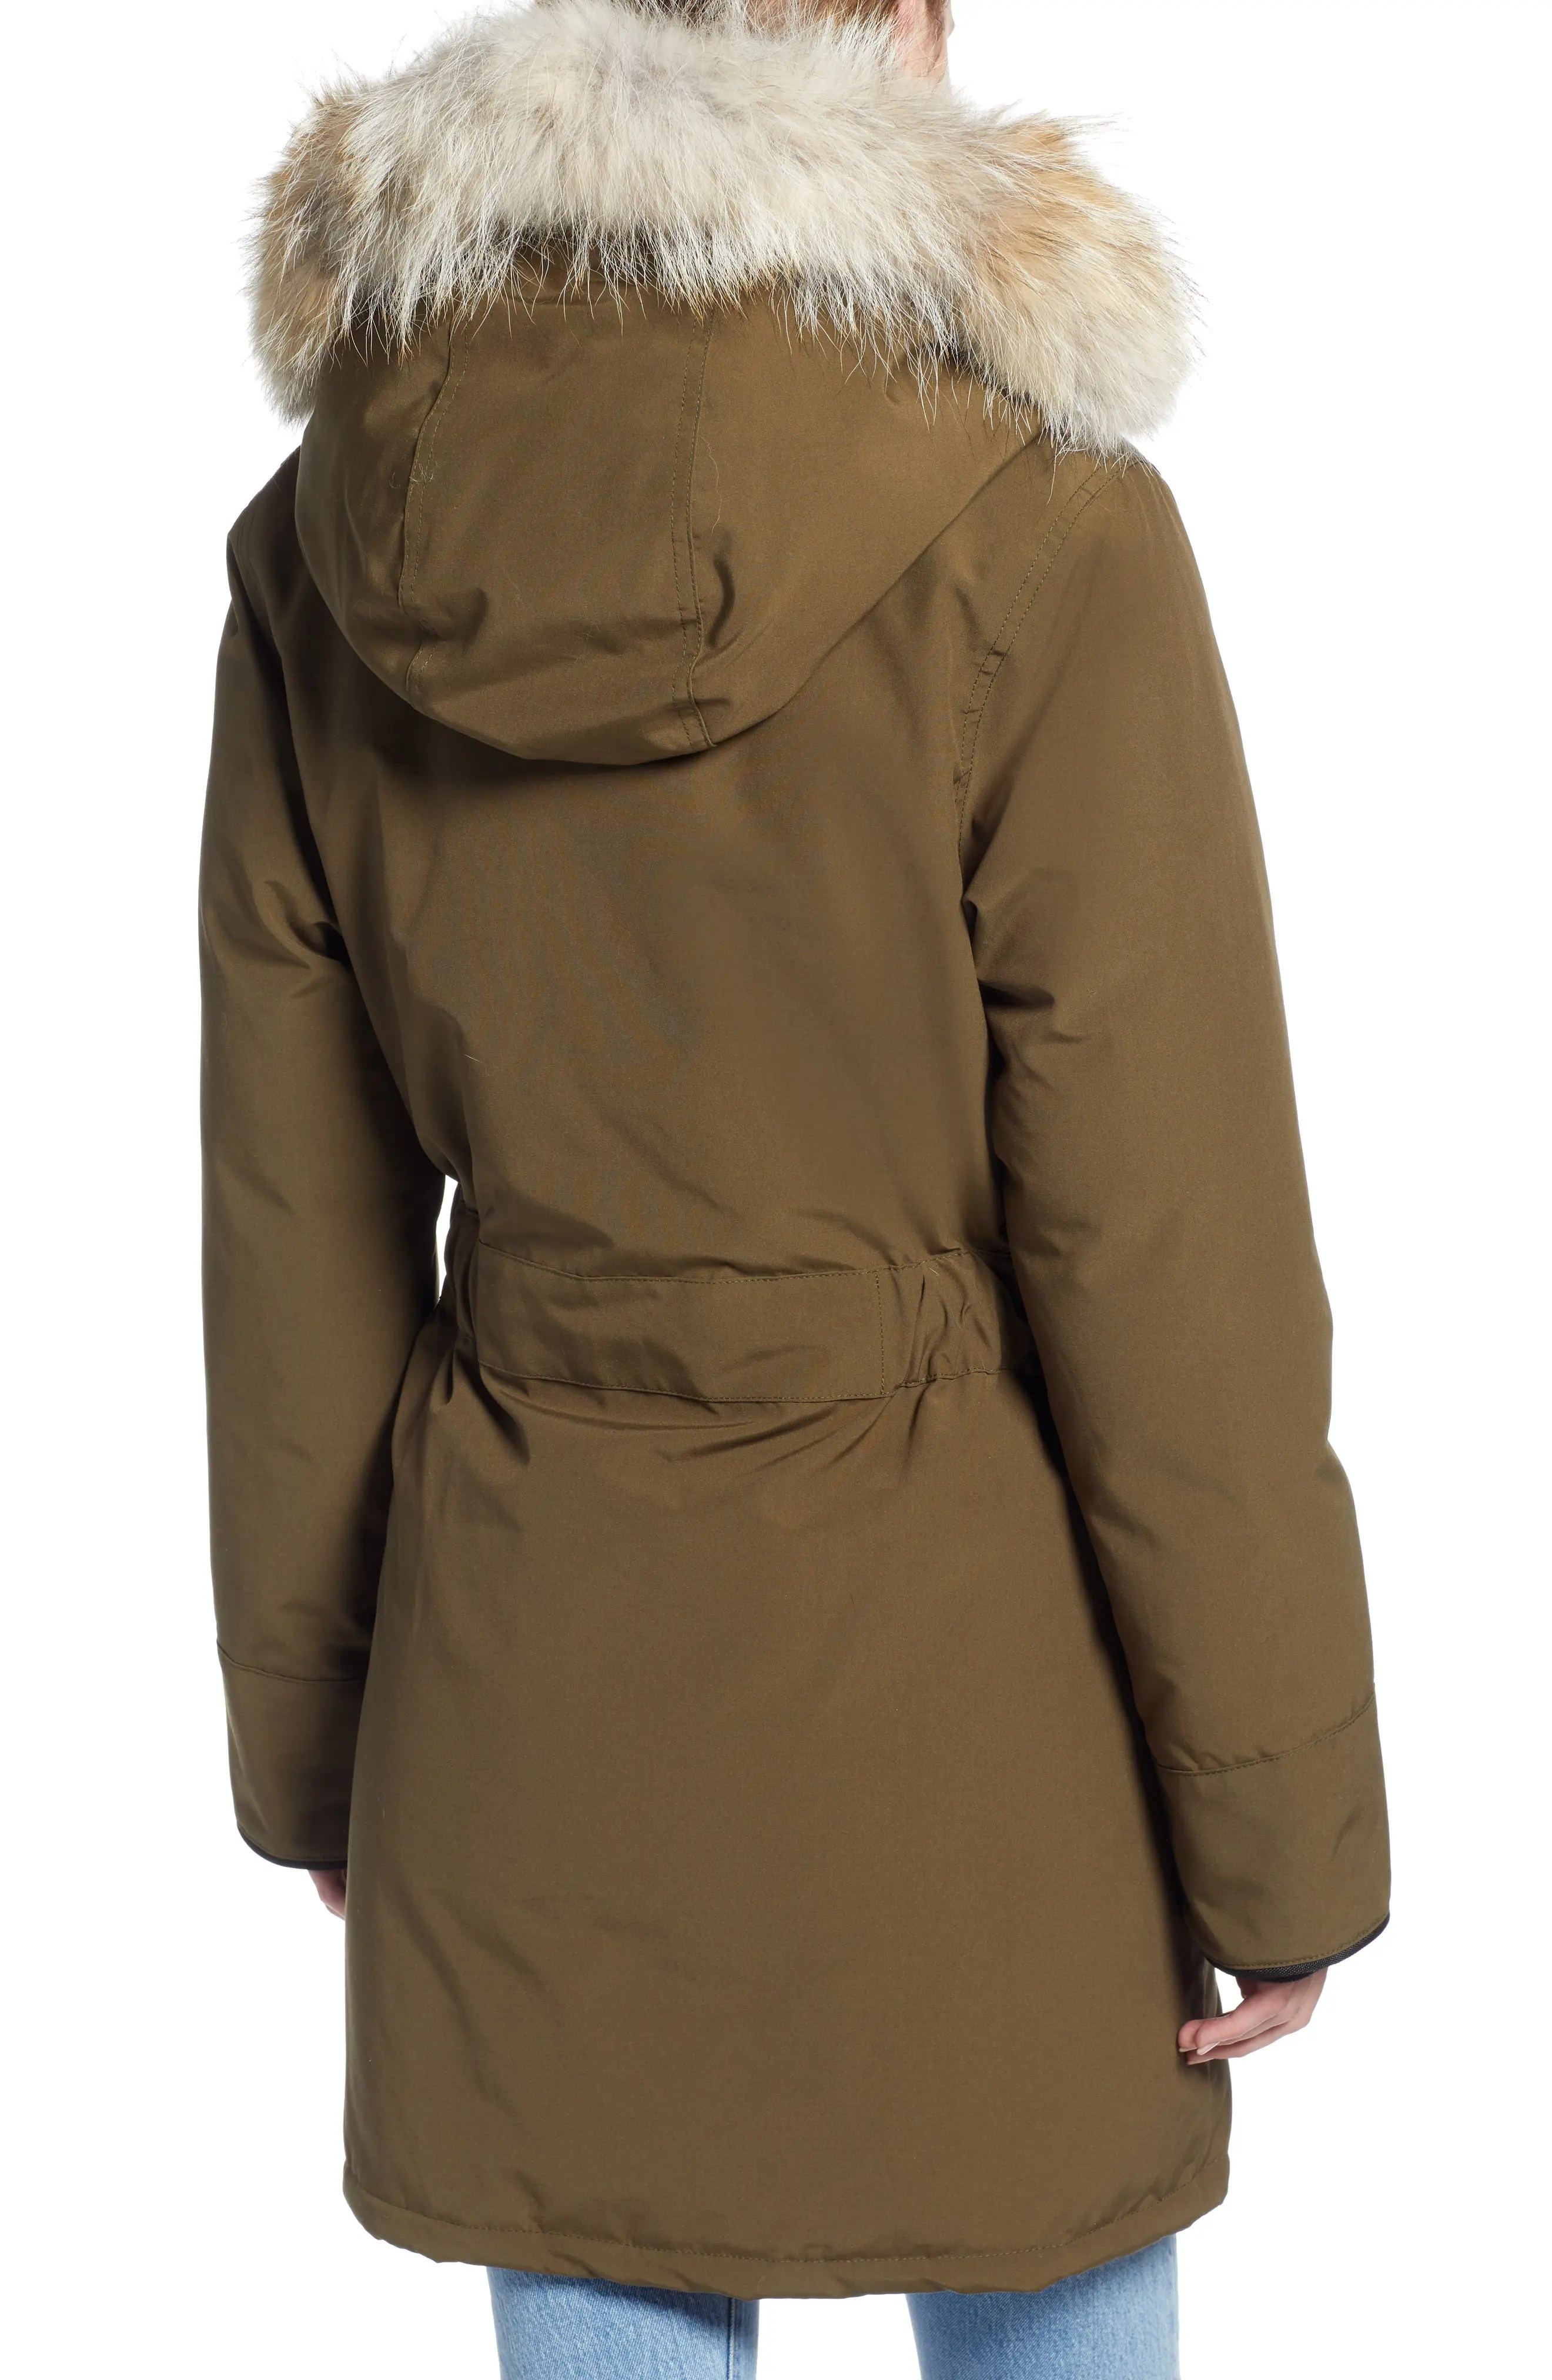 Handson Kweekkas Serre Women S Insulated Coats Jackets Nordstrom